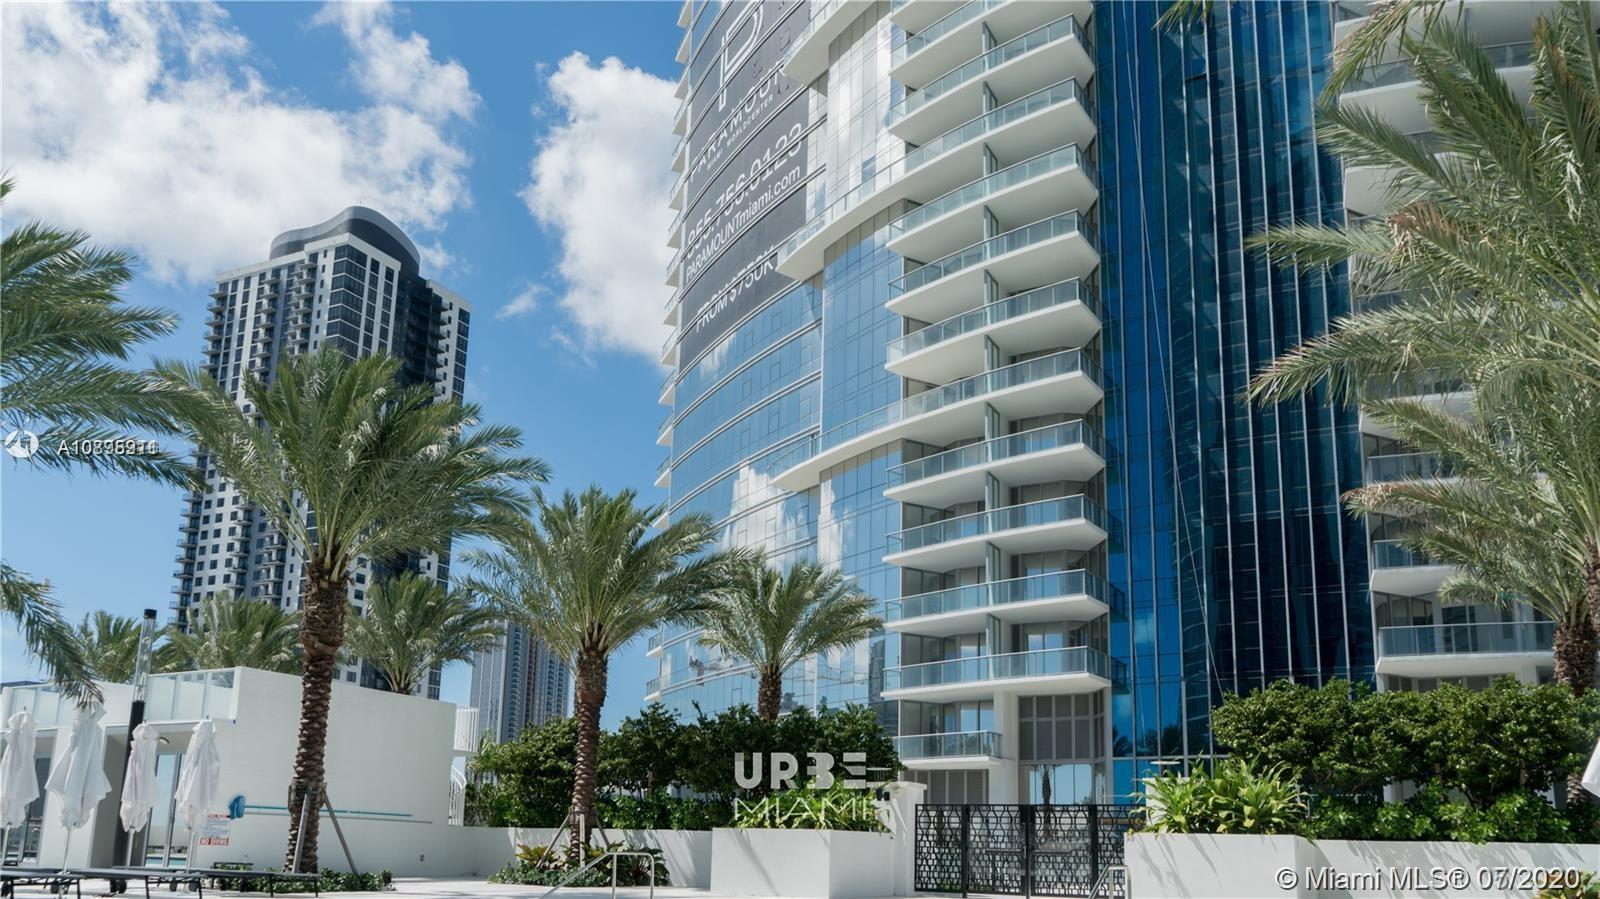 851 NE 1st Ave # 2706, Miami, Florida 33132, 1 Bedroom Bedrooms, ,2 BathroomsBathrooms,Residential,For Sale,851 NE 1st Ave # 2706,A10895911